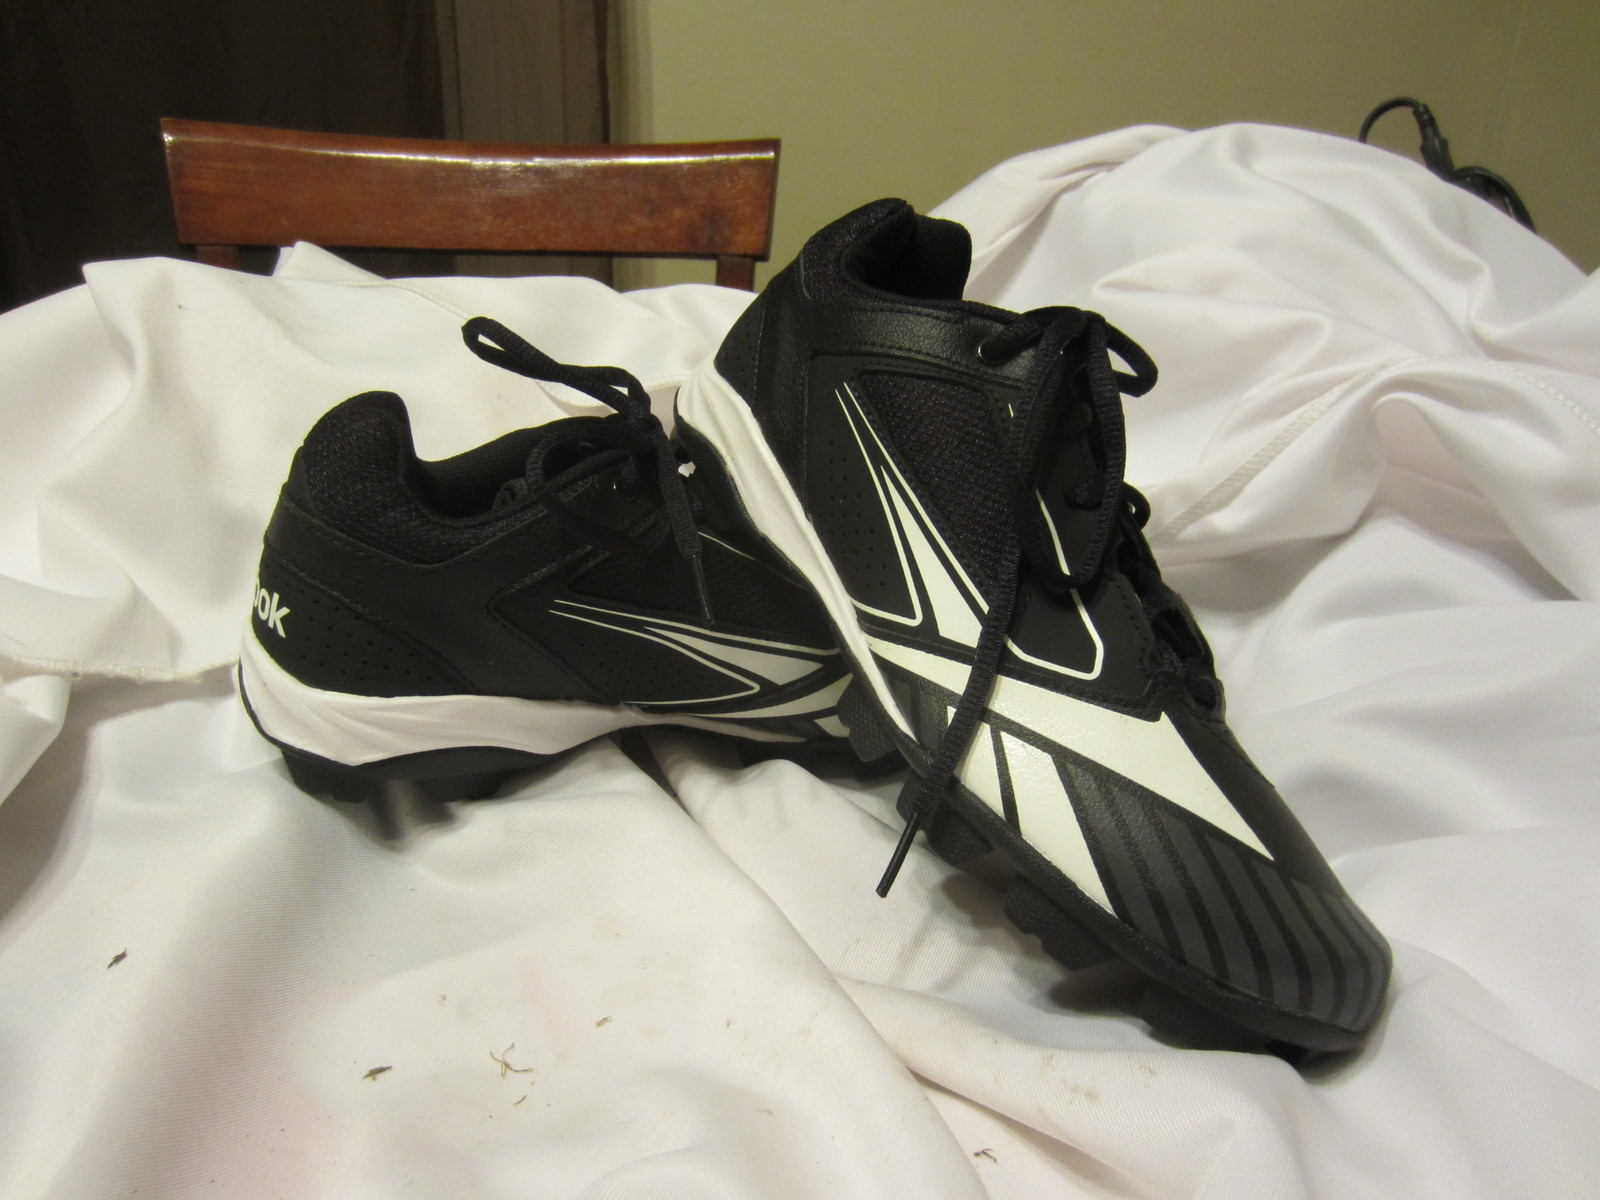 meet 27343 a3a42 New Reebok Youth Baseball Softball Cleats Size 5